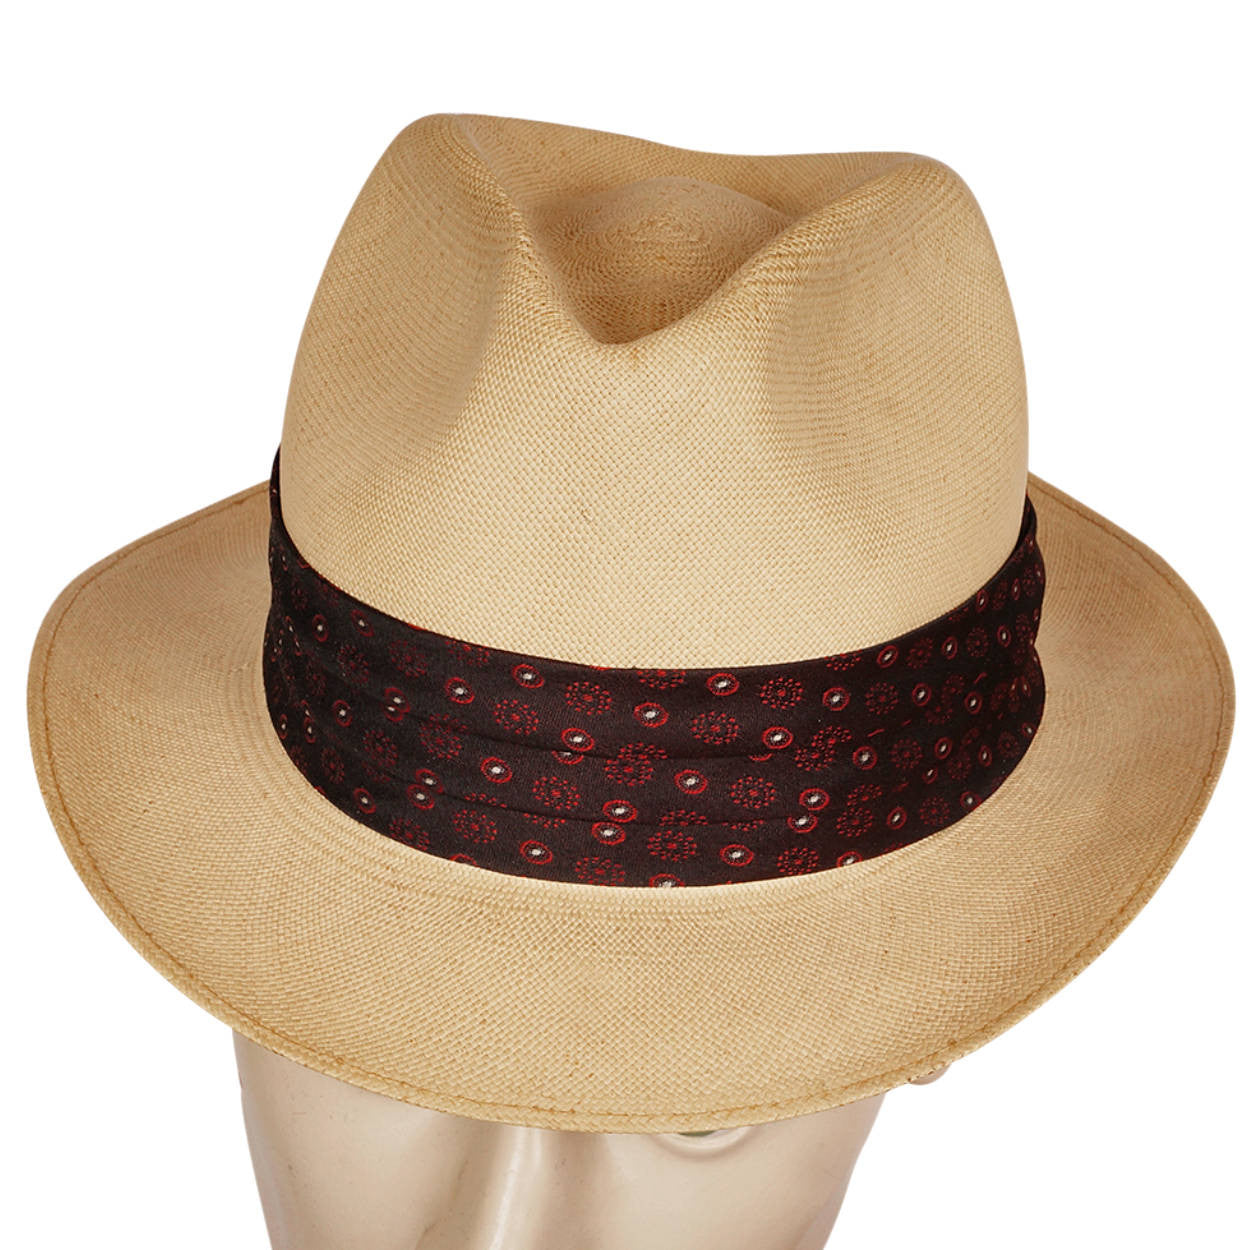 Poppy s Vintage Clothing - Fedoras and Vintage Hats for Men b97ba8dc6c45